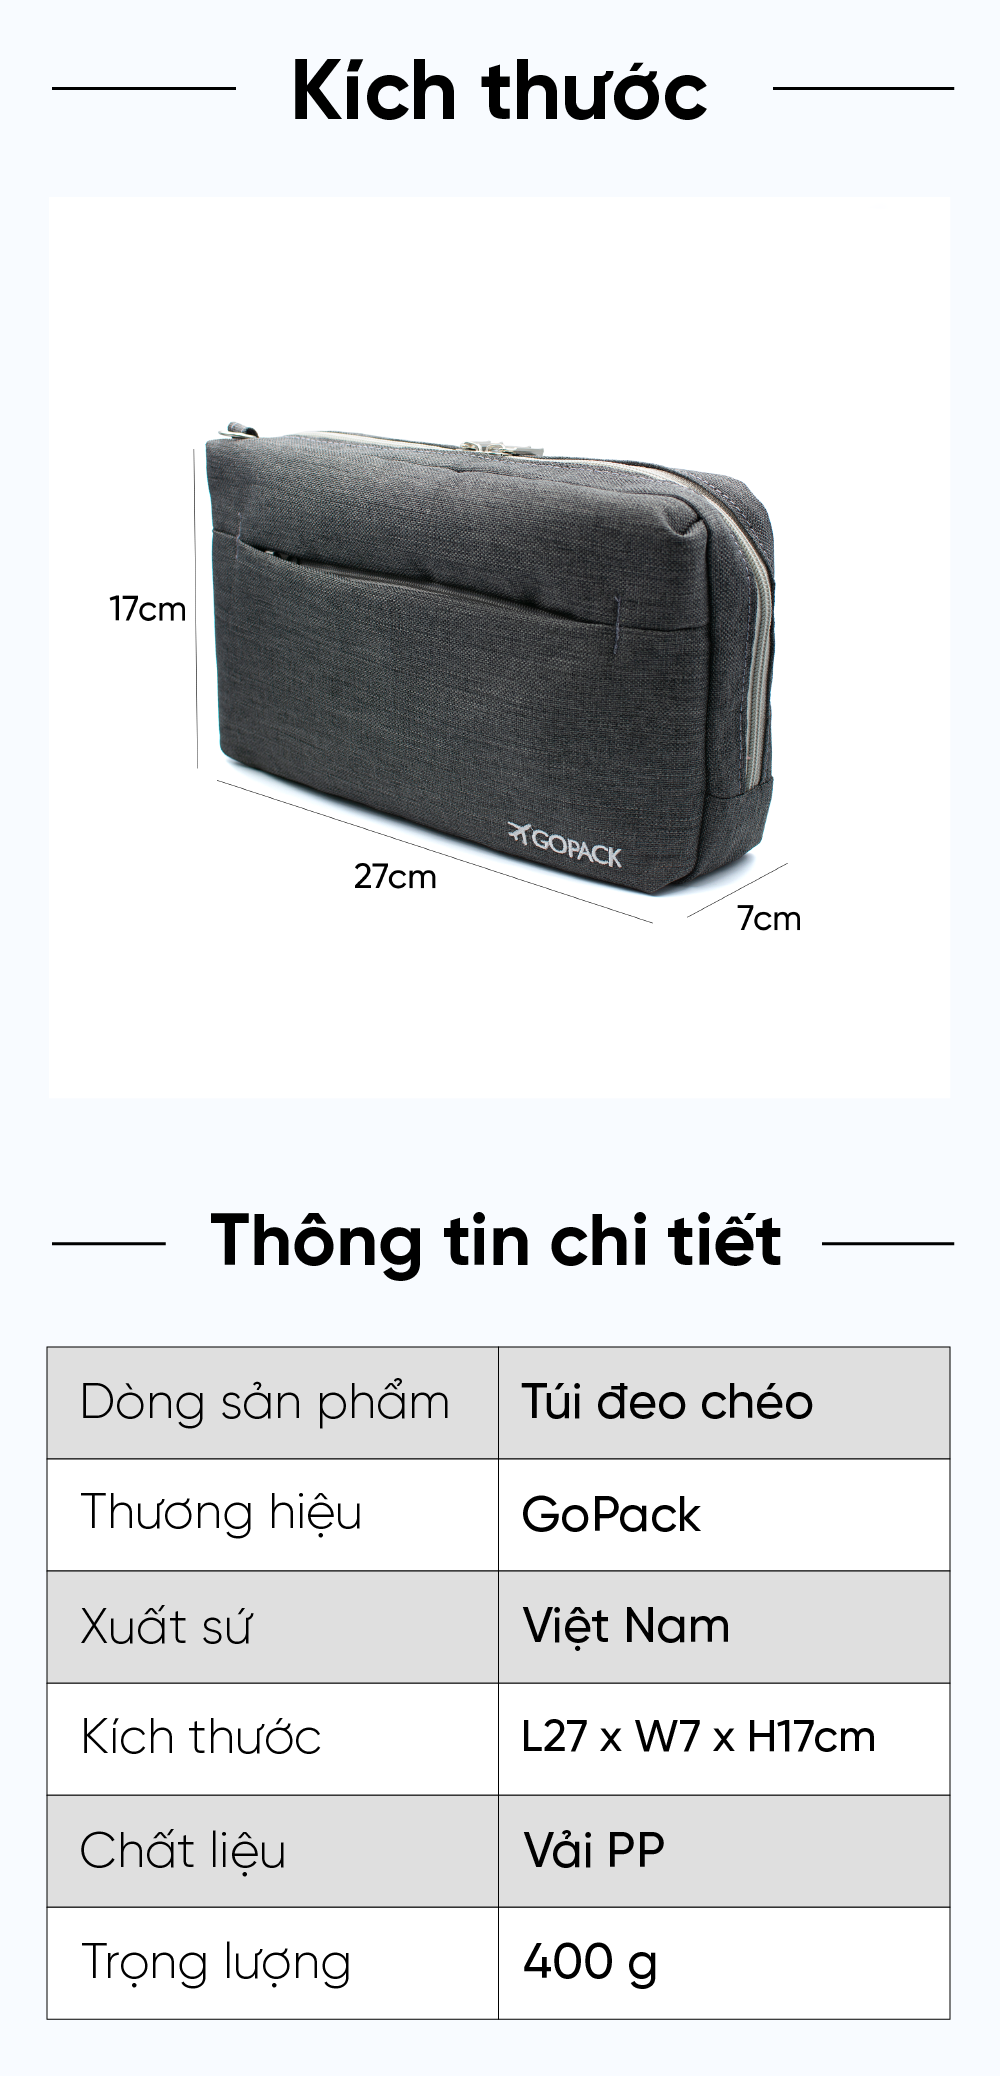 tui-deo-cheo-nam-nu-gopack-10-ngan-do-tien-ich